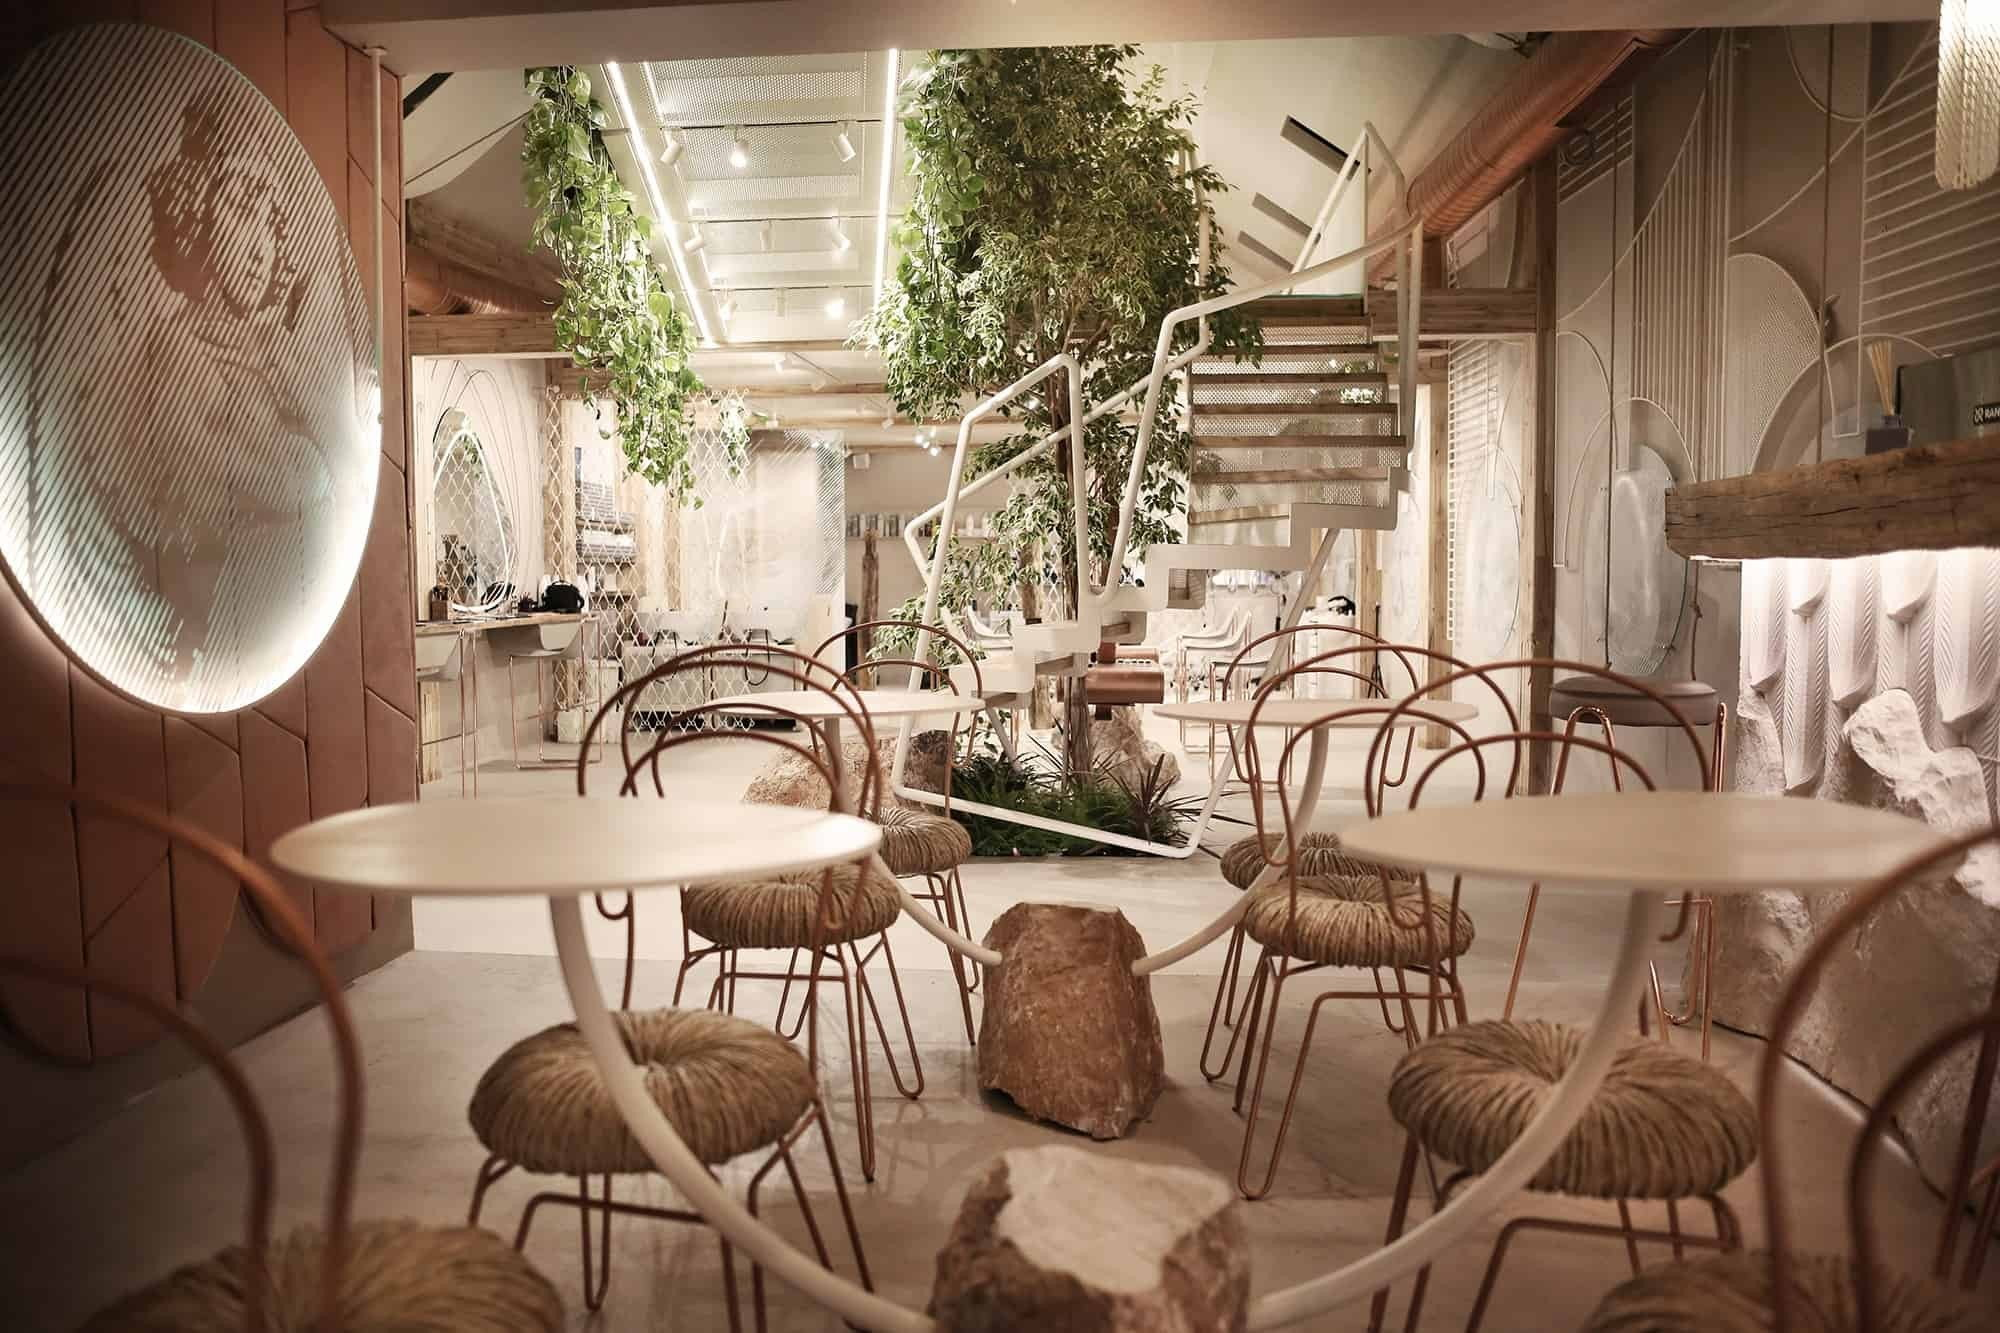 Sculptural tables and chairs featured inside Kosovo's new